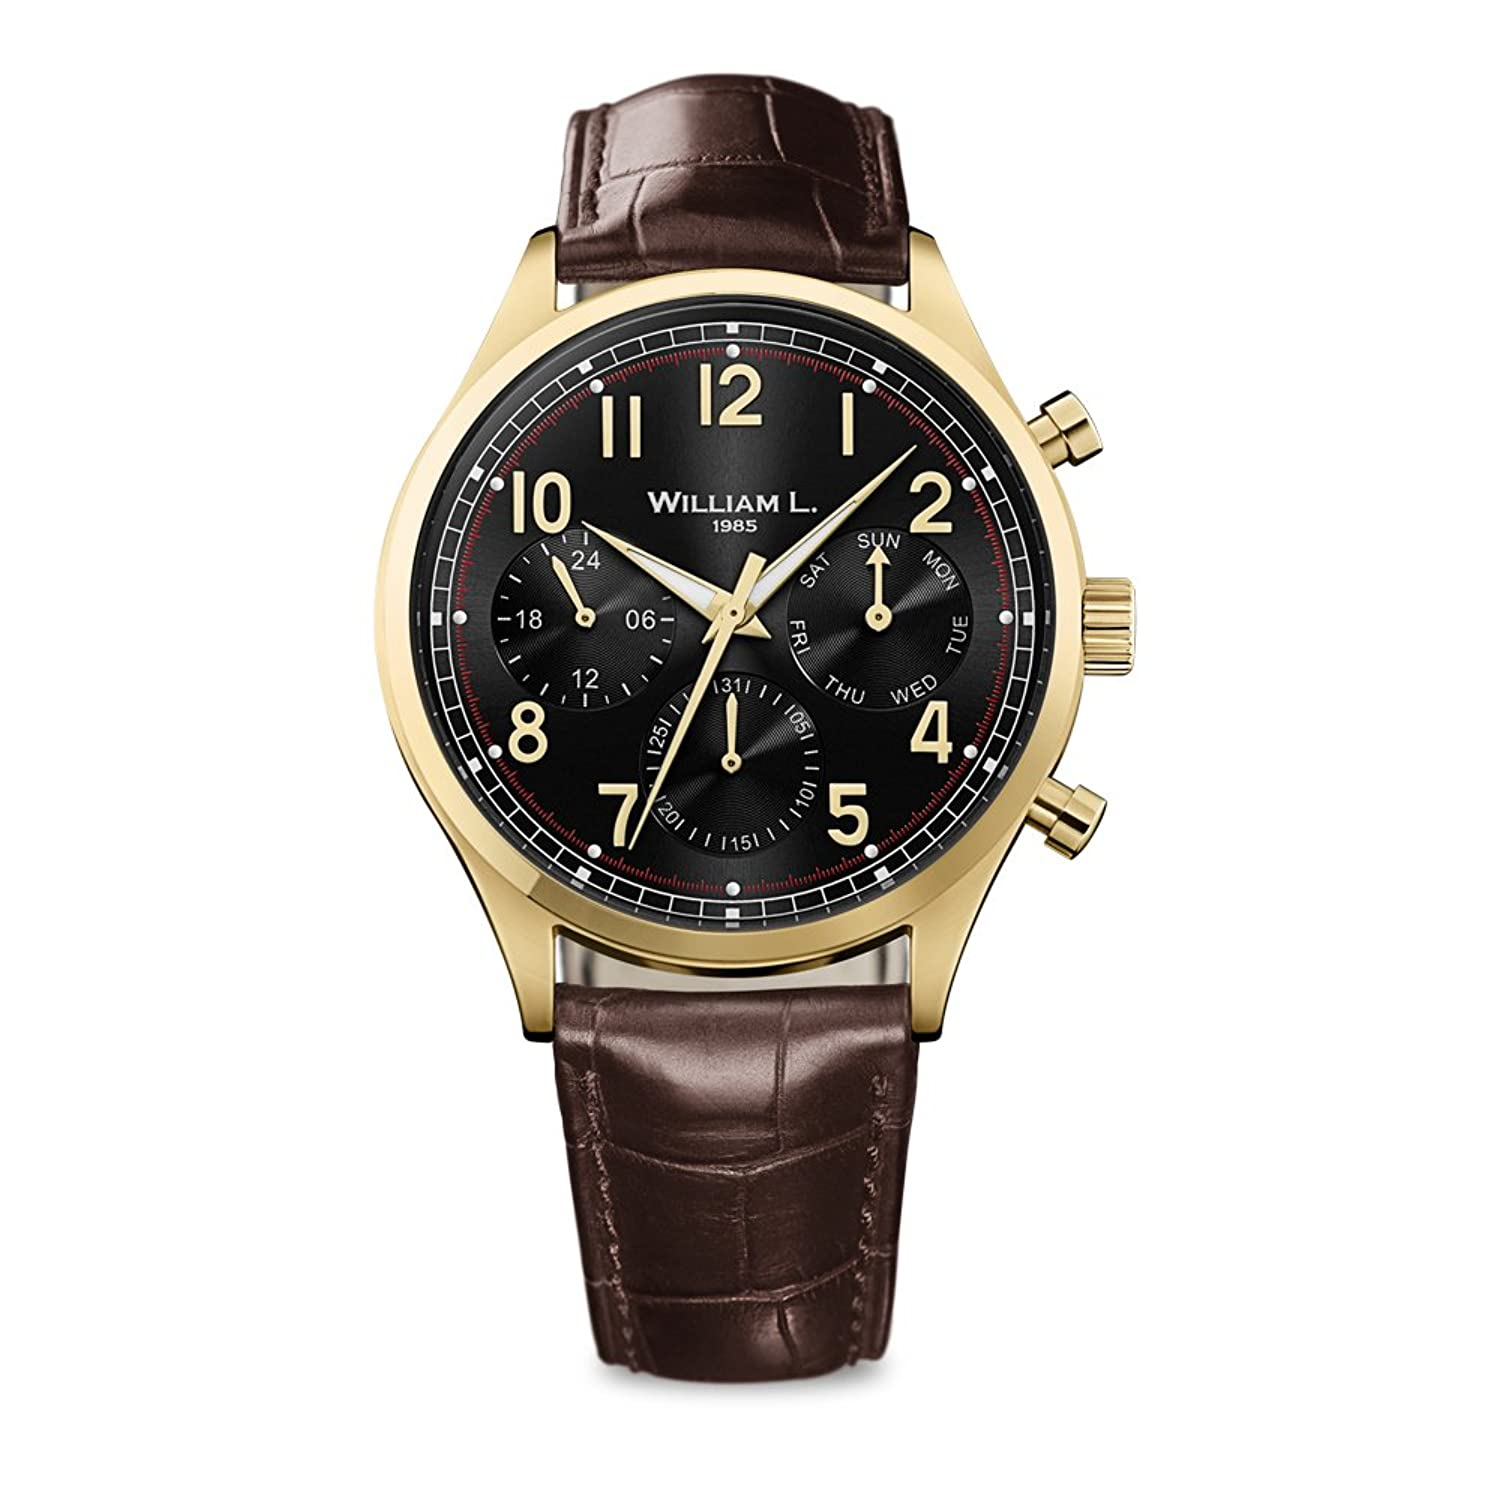 William L. Mens-Armbanduhr WLOJ03NROJCM